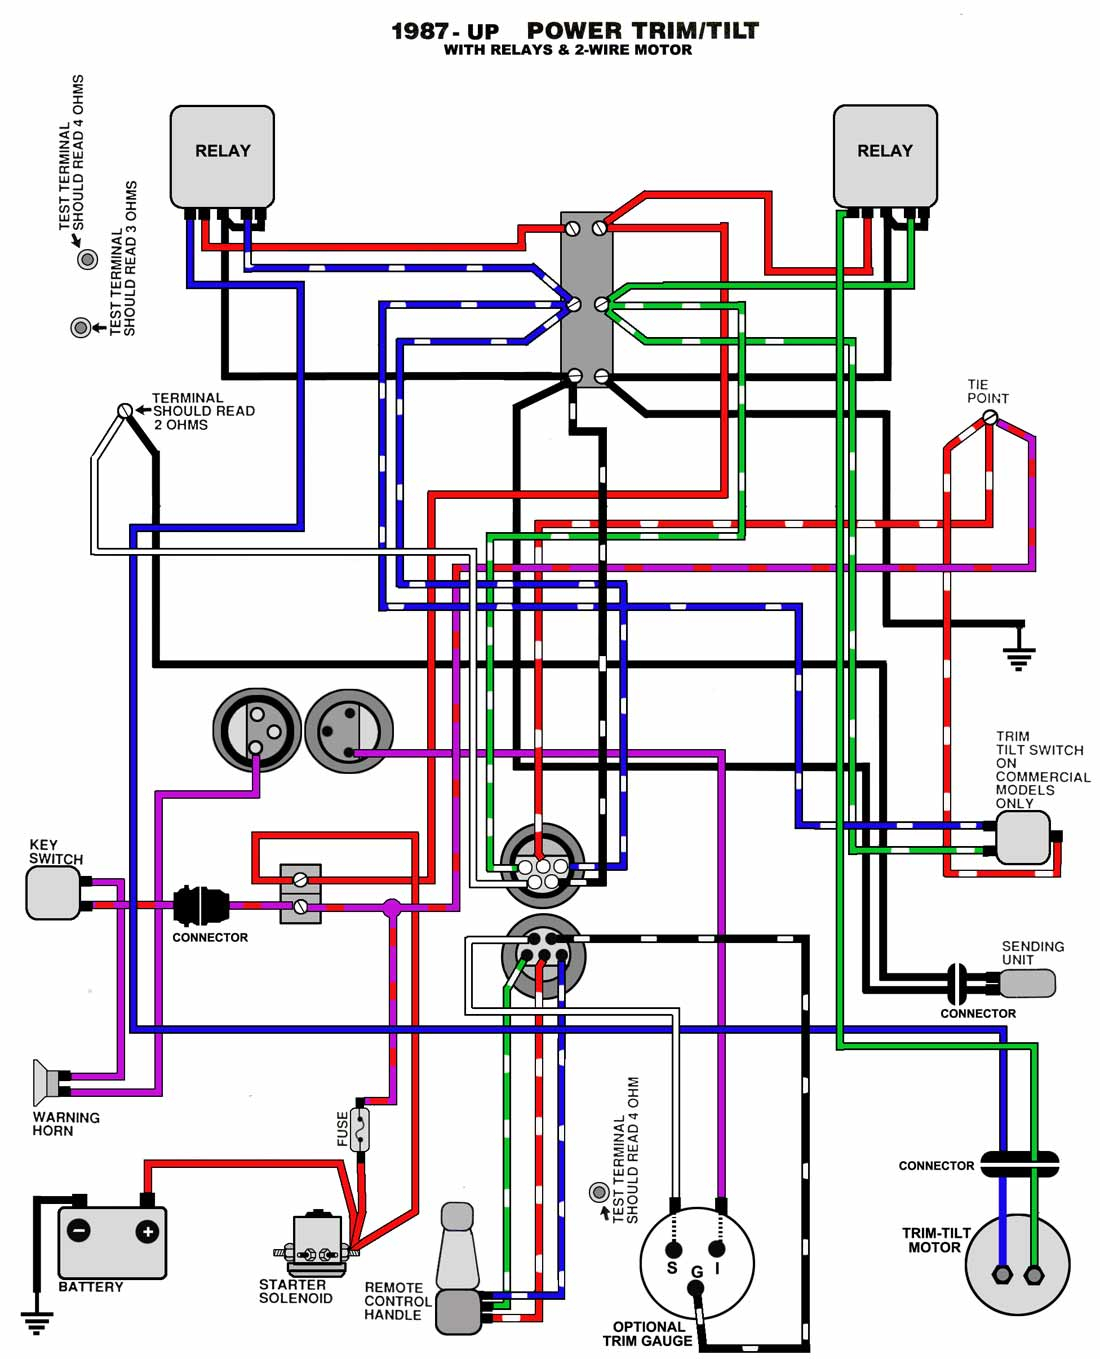 Trim Motor Wiring Simple Electrical Wiring Diagram Trim Limiter Wiring- Diagram Trim Wiring Diagram